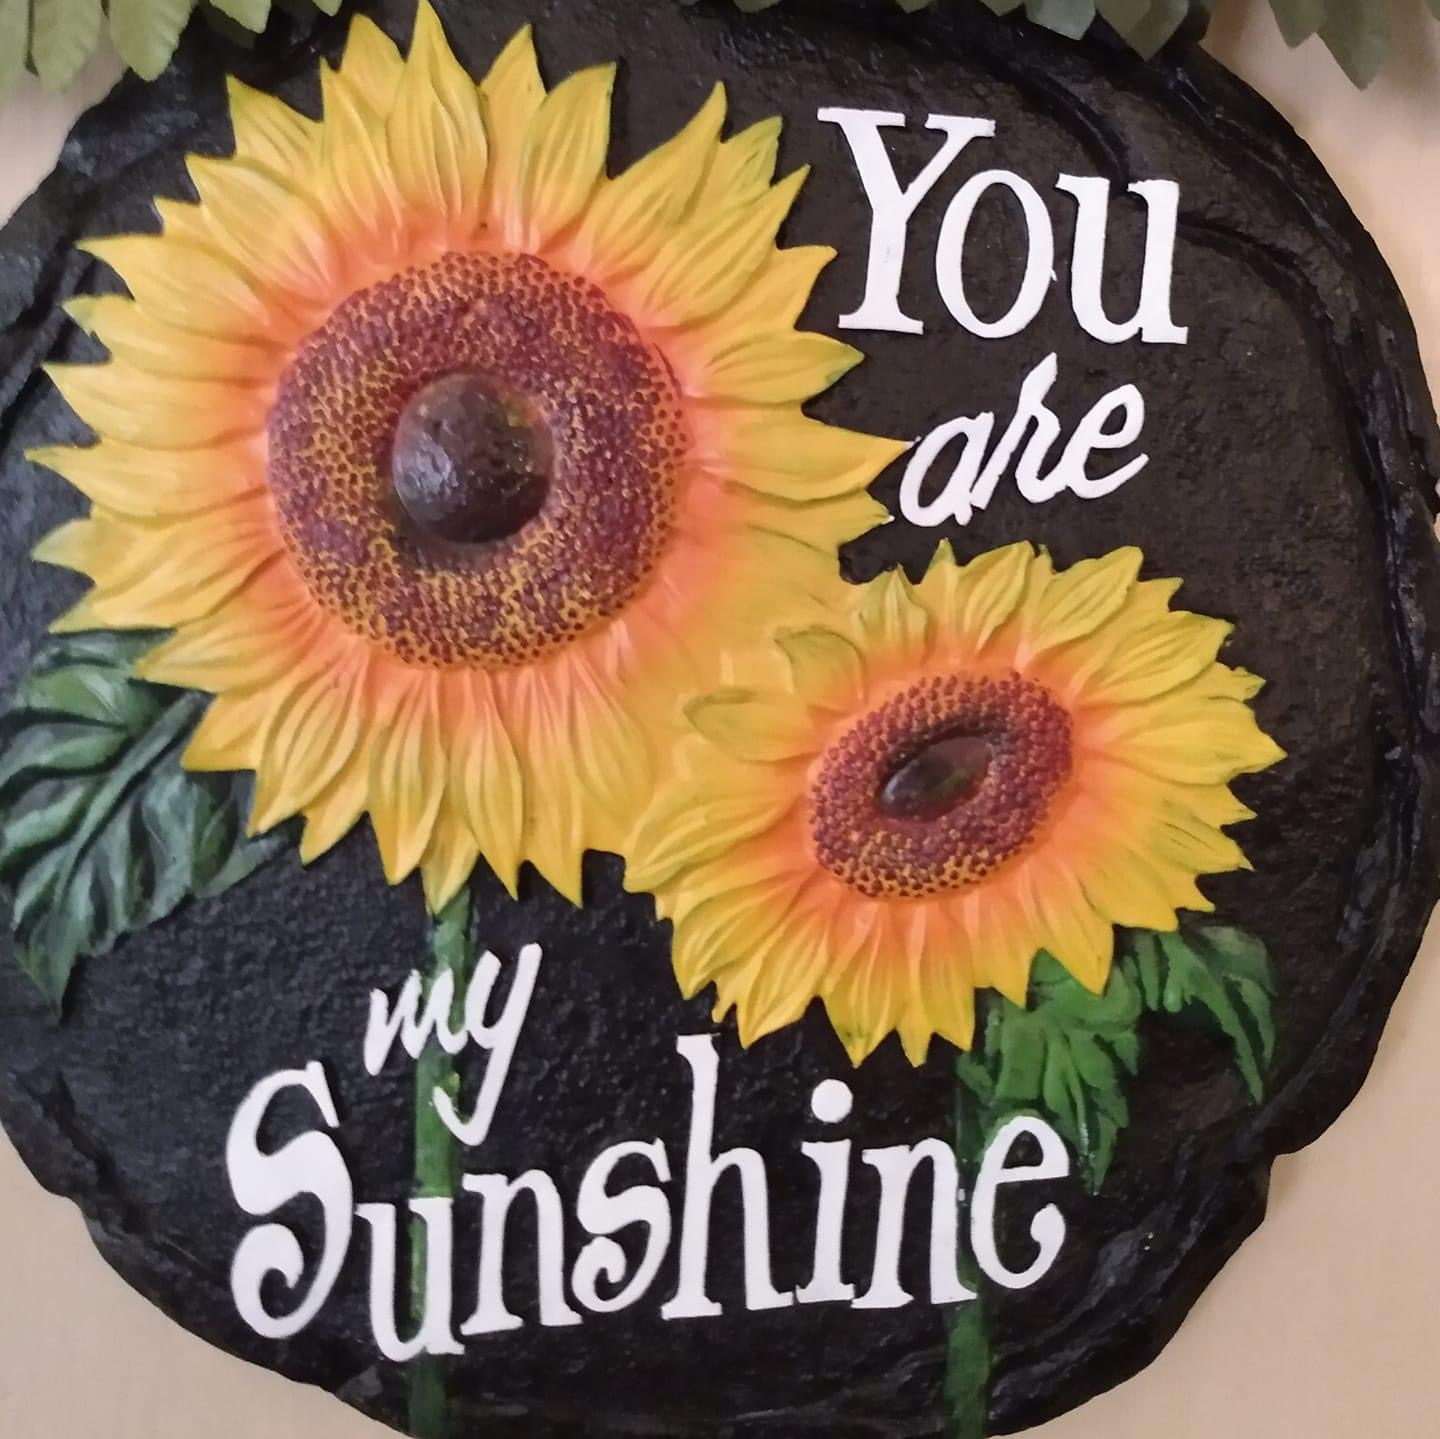 Yes, you are my sunshine  my love ⭐️